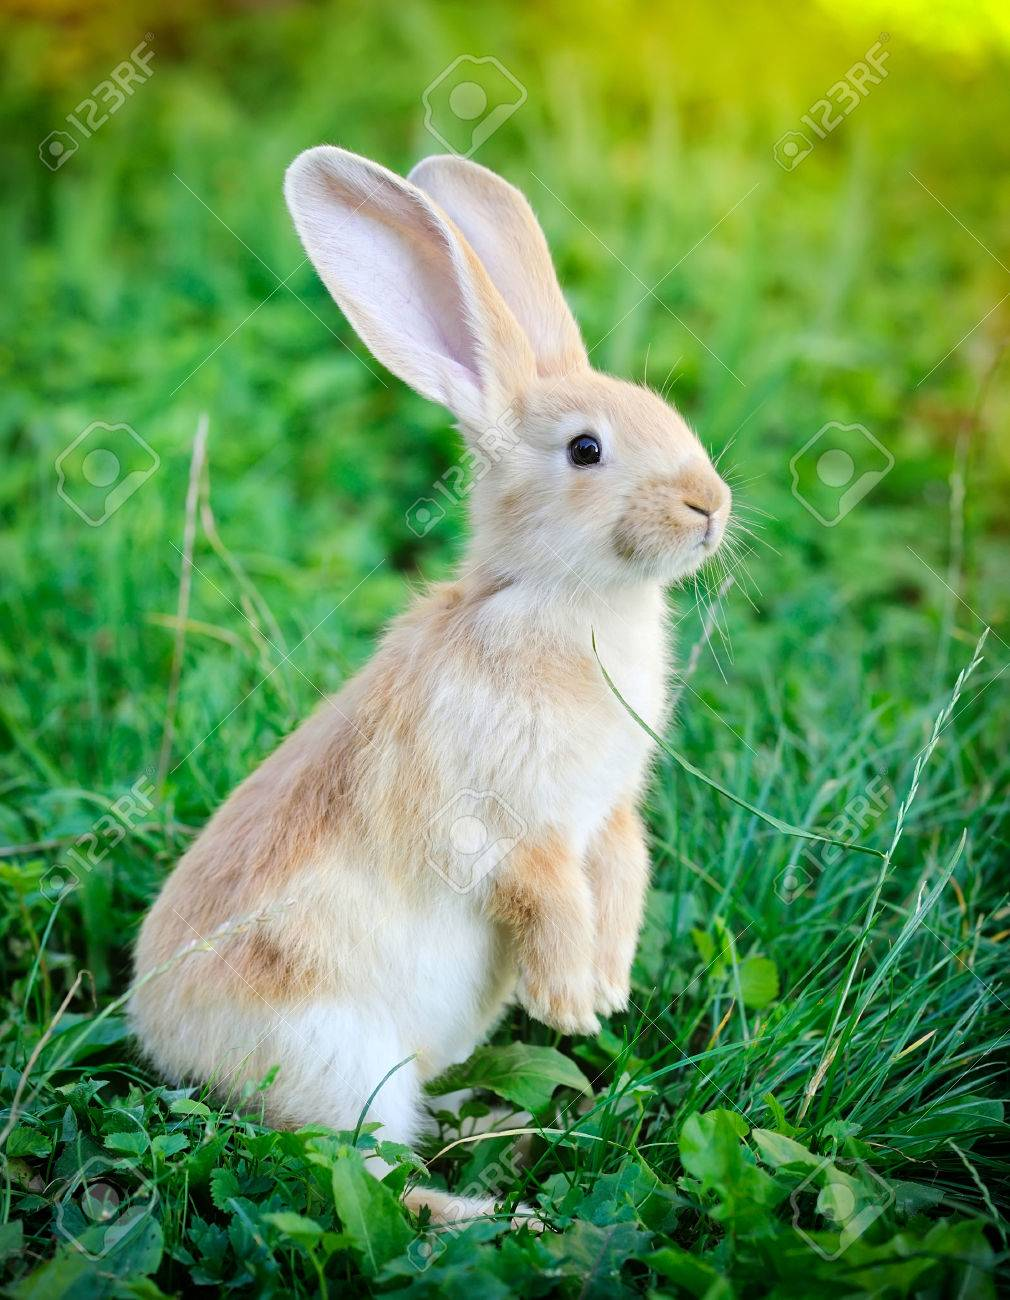 Little Rabbit Standing On Hind Legs In The Grass Stock Photo